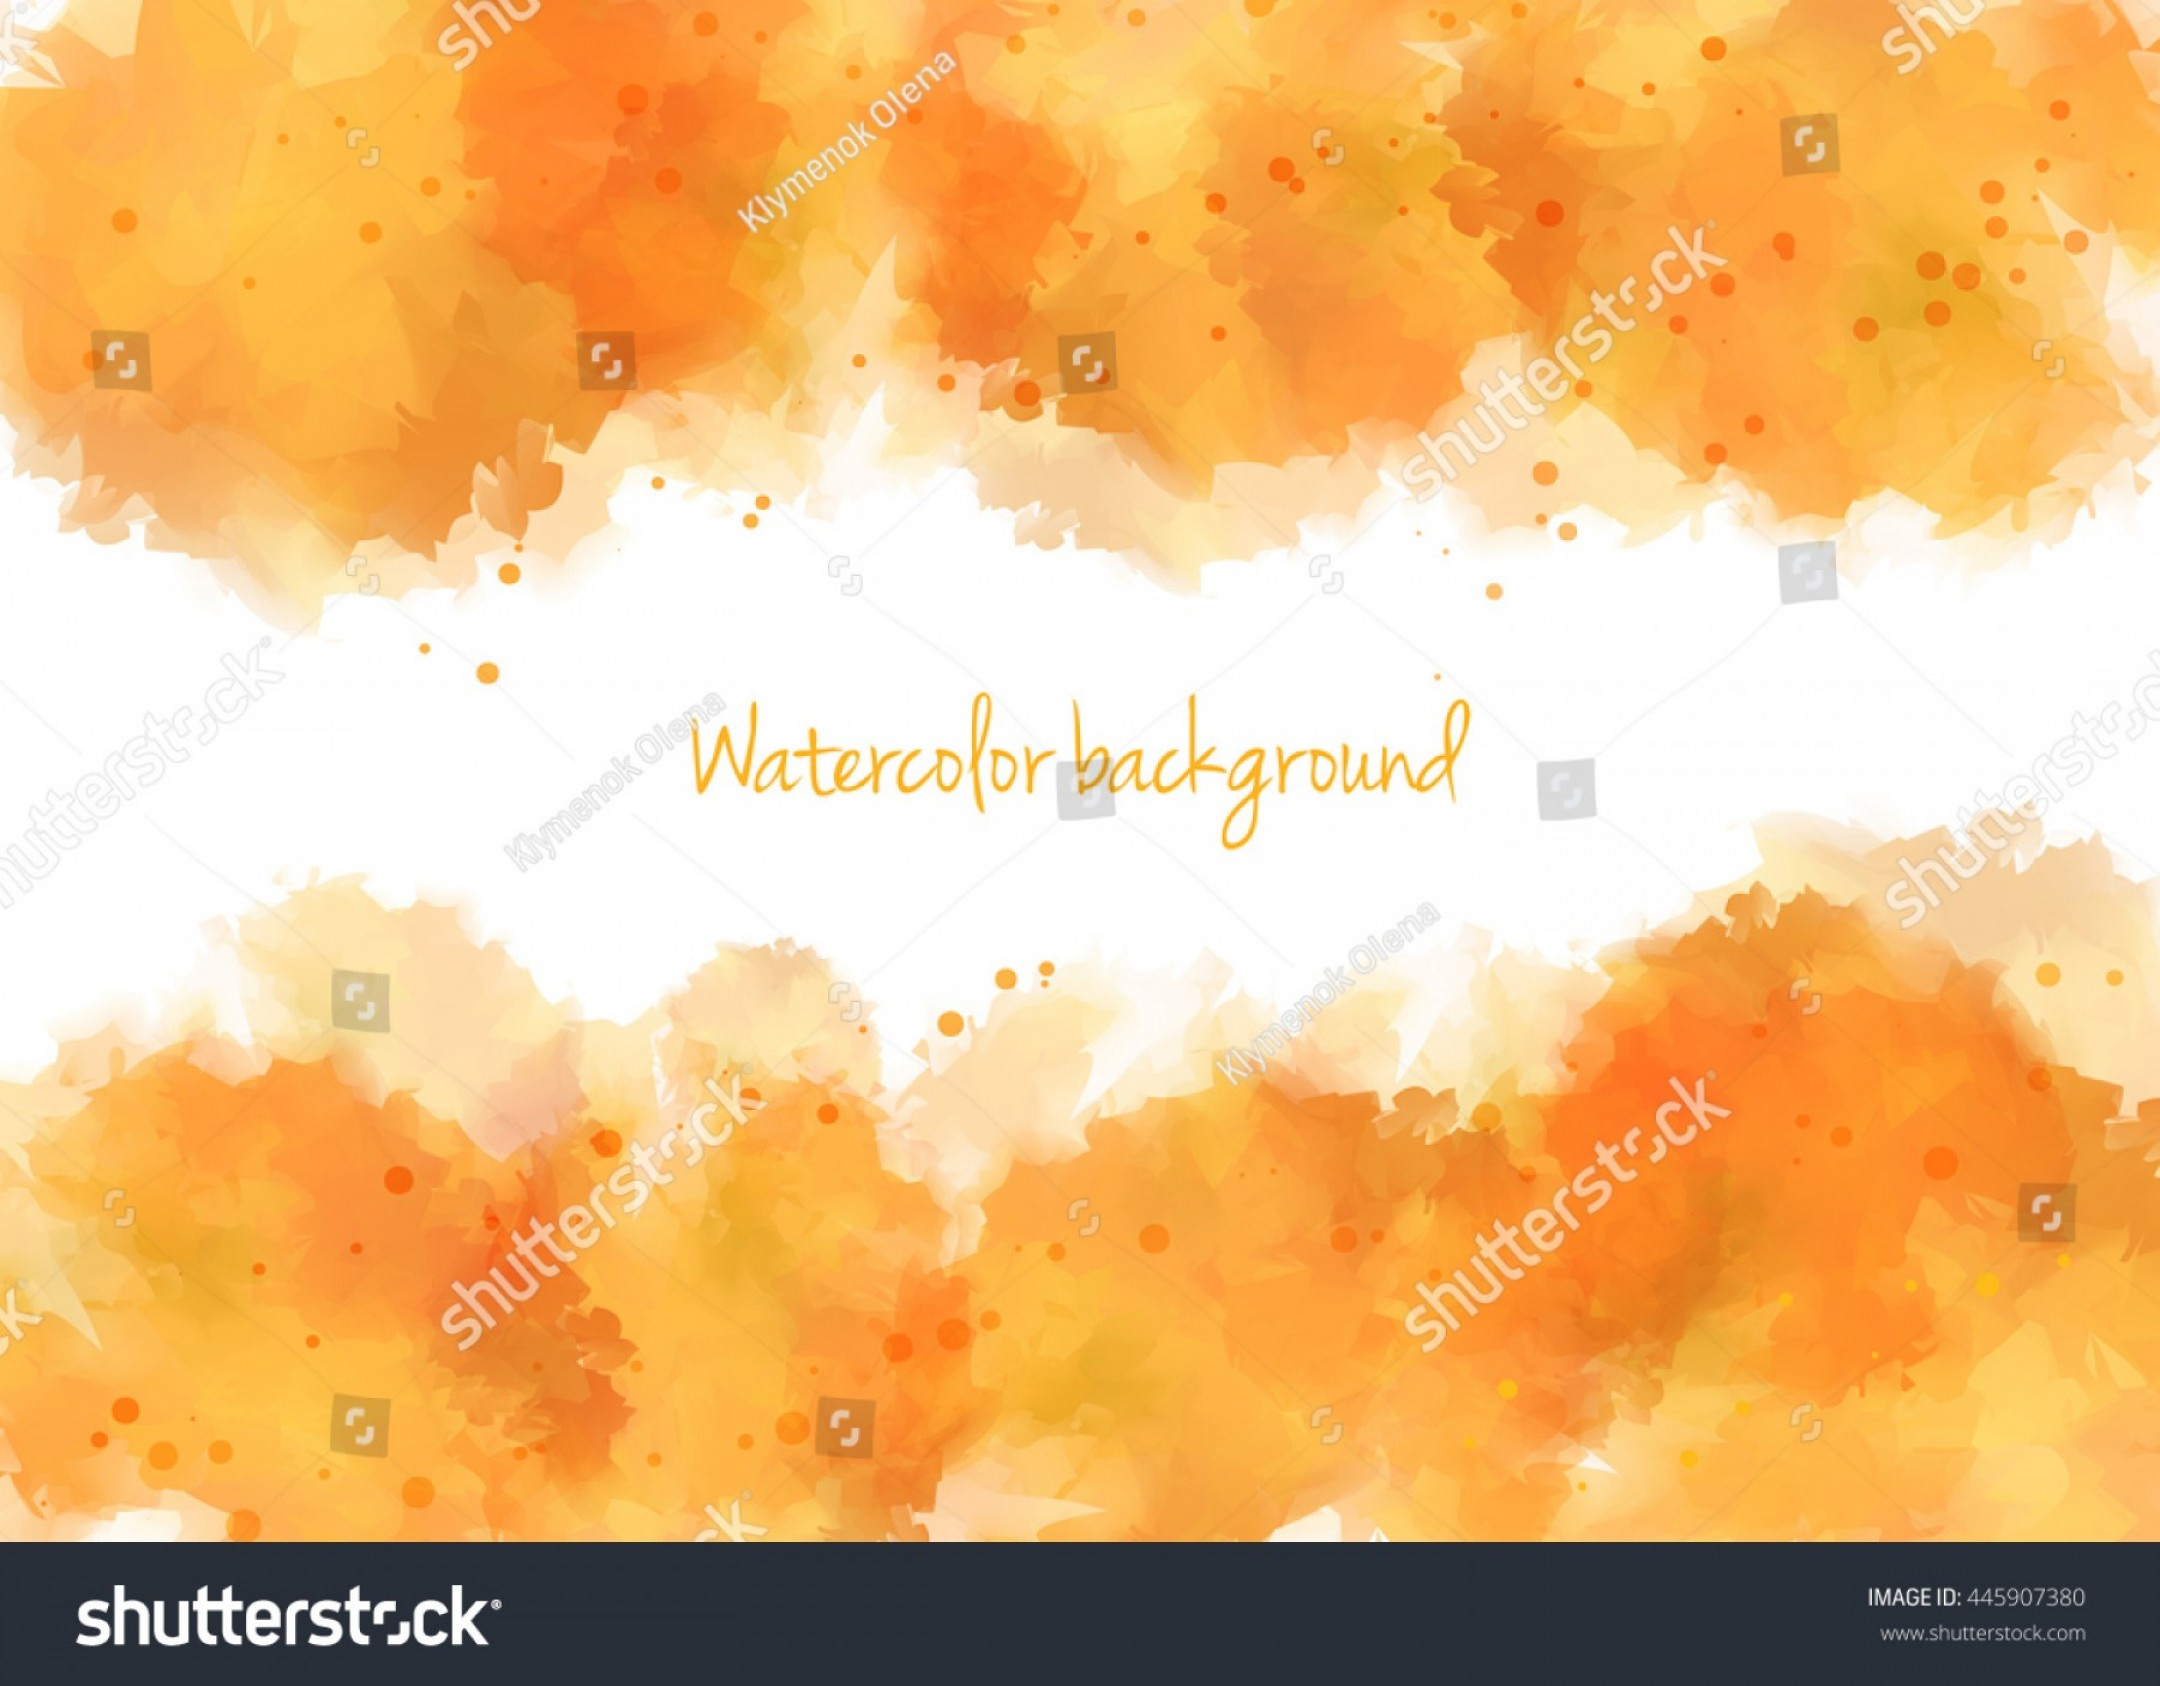 Orange Watercolor Vector Free: Abstract Orange Background Like Watercolor Vector